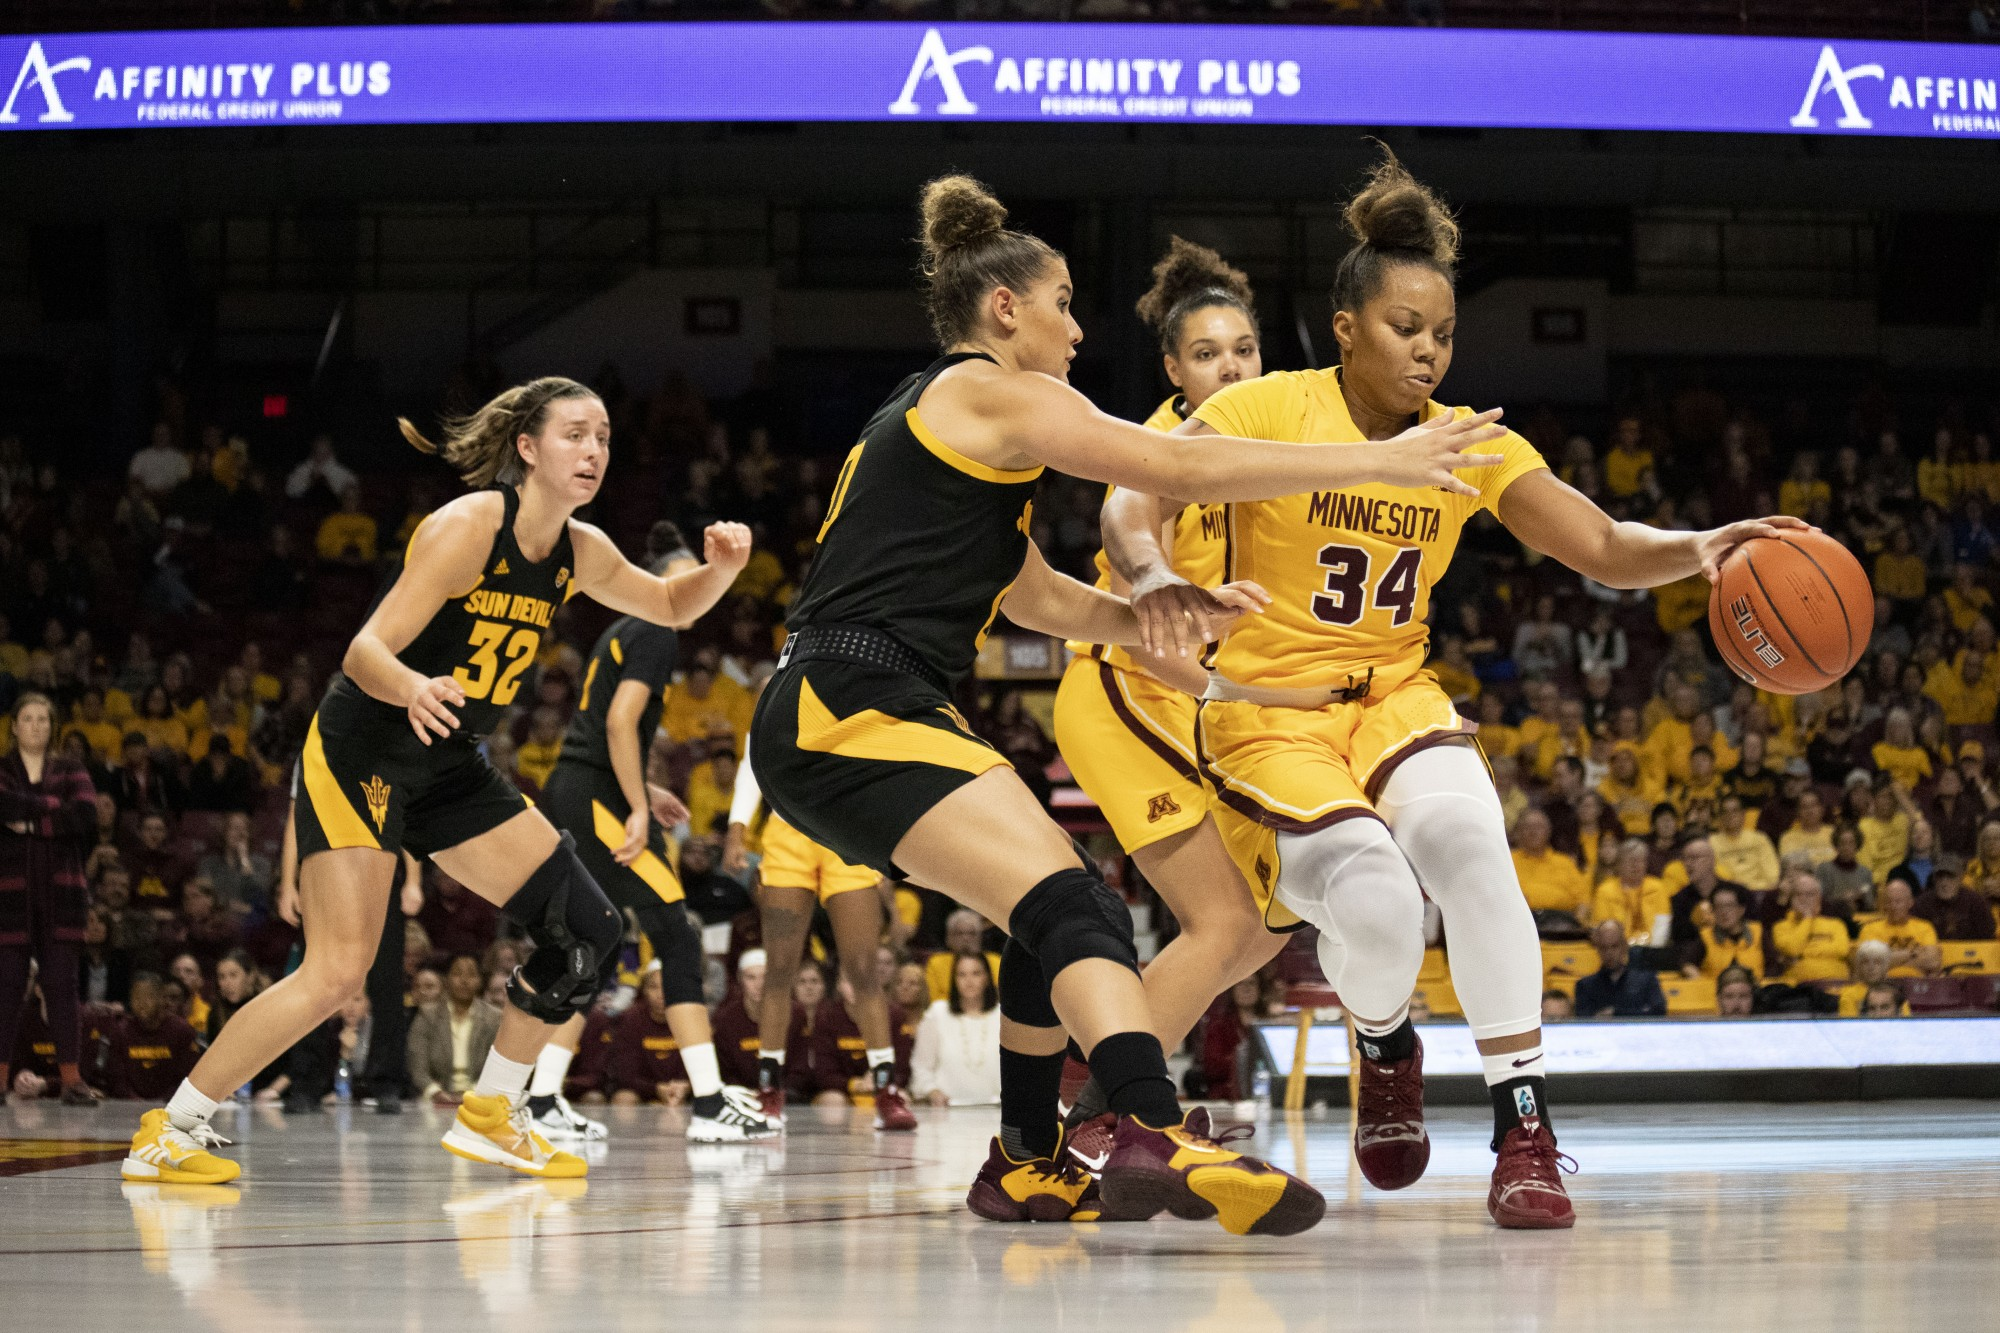 Guard Gadiva Hubbard reaches to grab the ball during the game against Arizona State at Williams Arena on Sunday, Nov. 17, 2019. The Gophers defeated the Sun Devils 80-66.